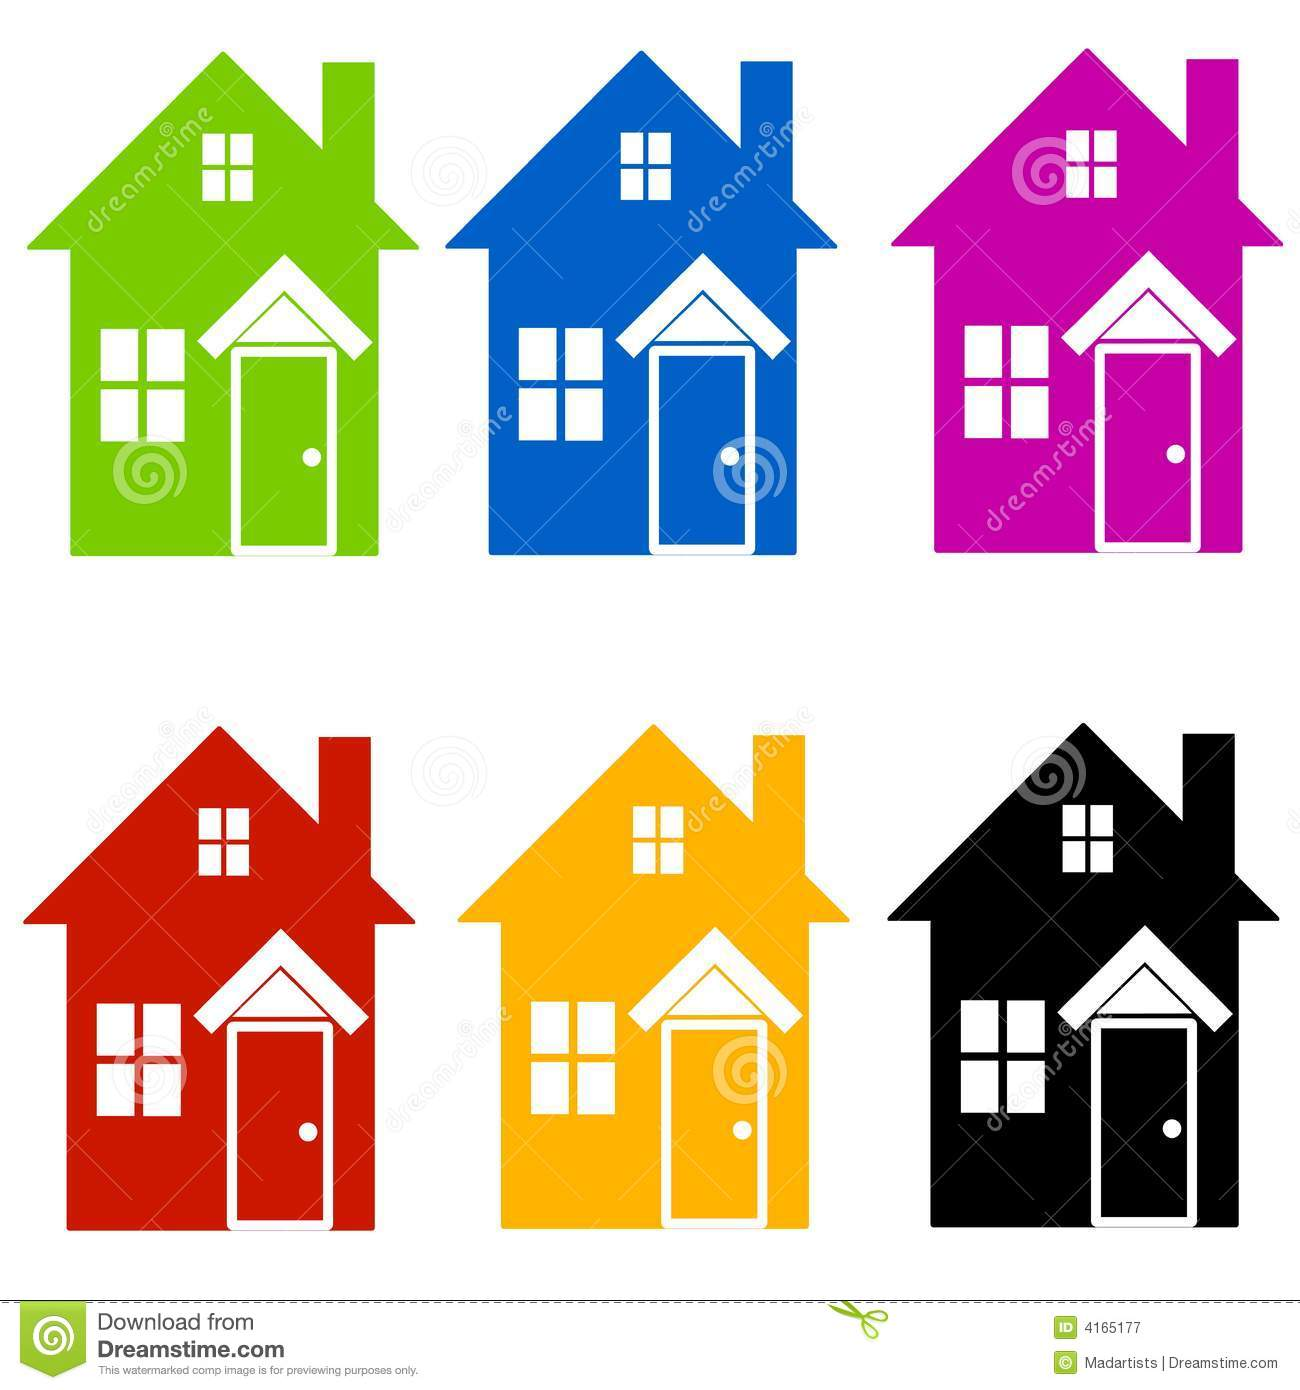 Free stock clipart clipart royalty free stock Colourful House Silhouettes Clip Art Royalty Free Stock ... clipart royalty free stock